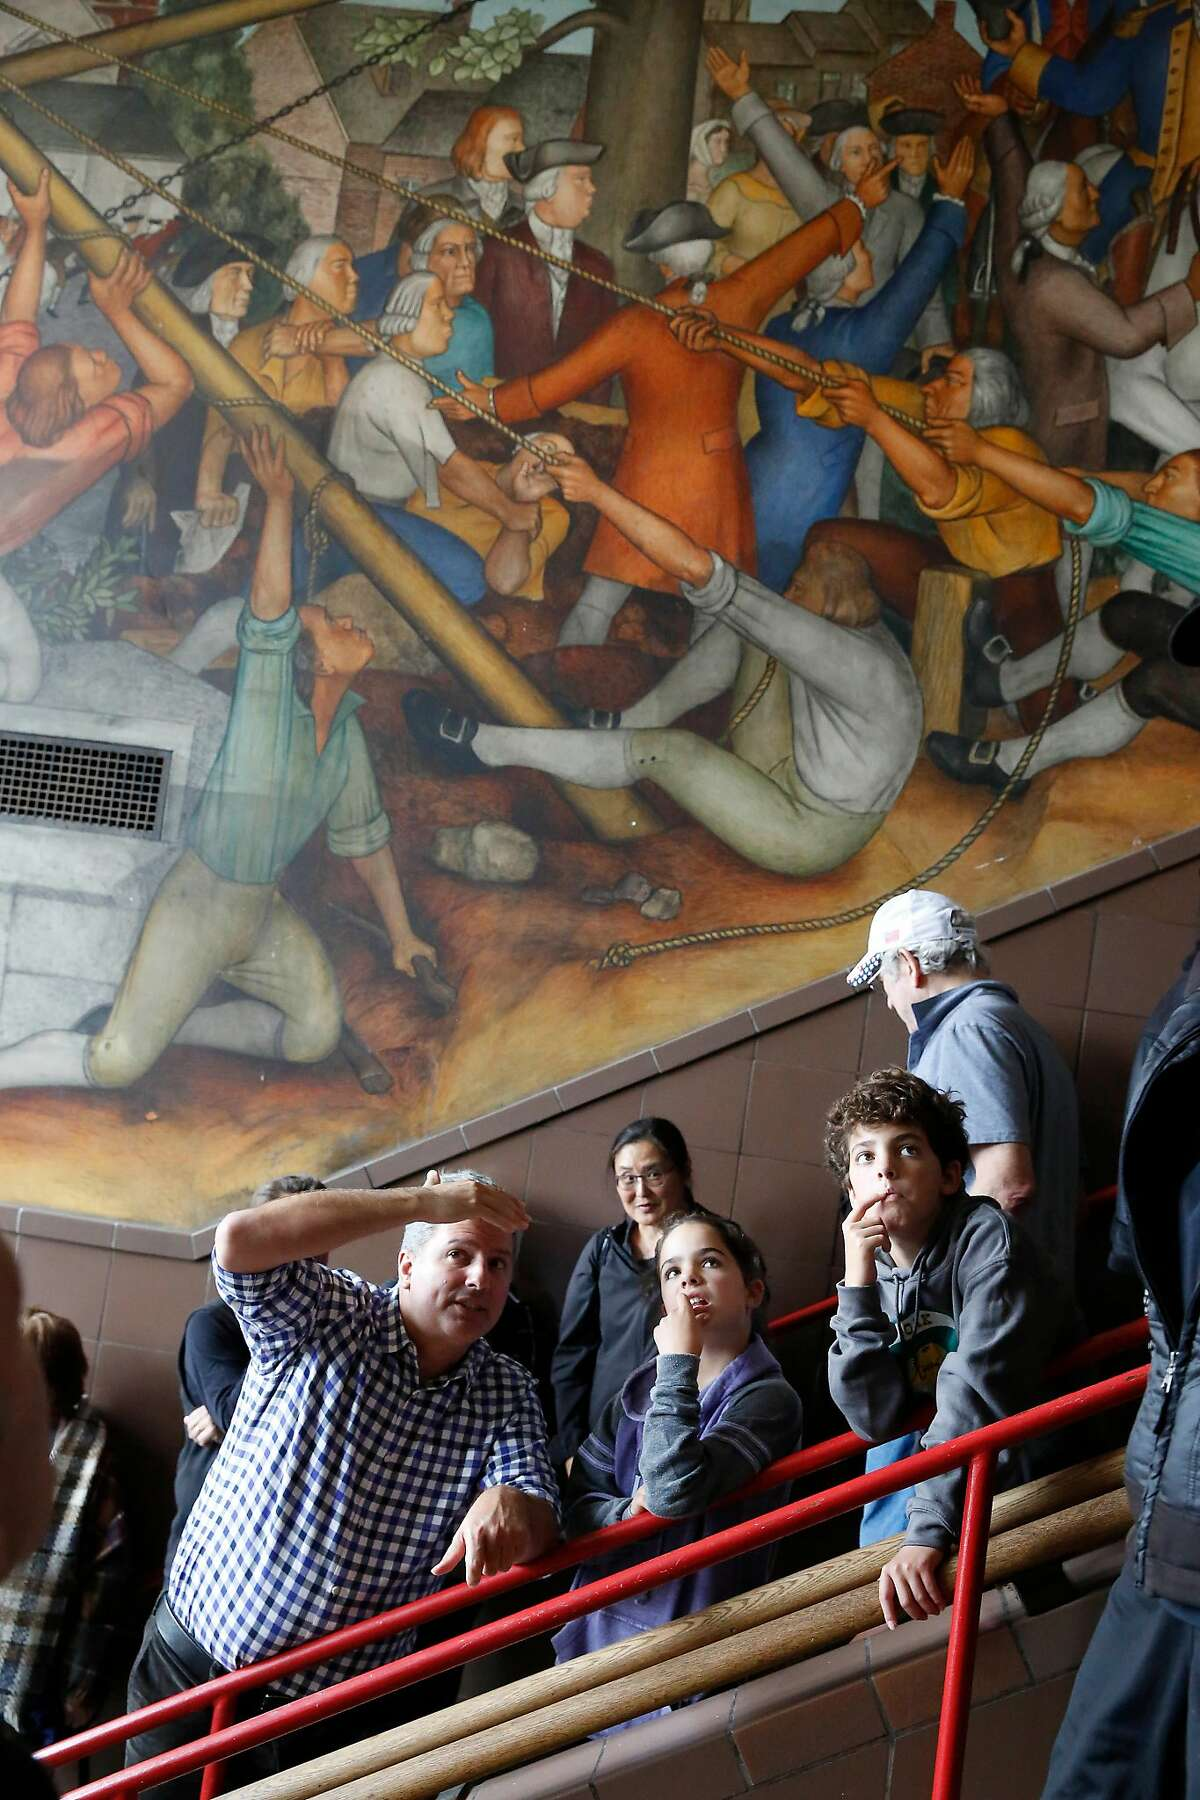 Charles Barr (l to r) talks with his children Phoebe Barr, 10 and Larry Barr, 12, all of San Francisco, as they look at a 1936 mural depicting the life of George Washington by San Francisco artist Victor Arnautoff at George Washington High School during a public viewing on Thursday, August 1, 2019 in San Francisco, Calif.